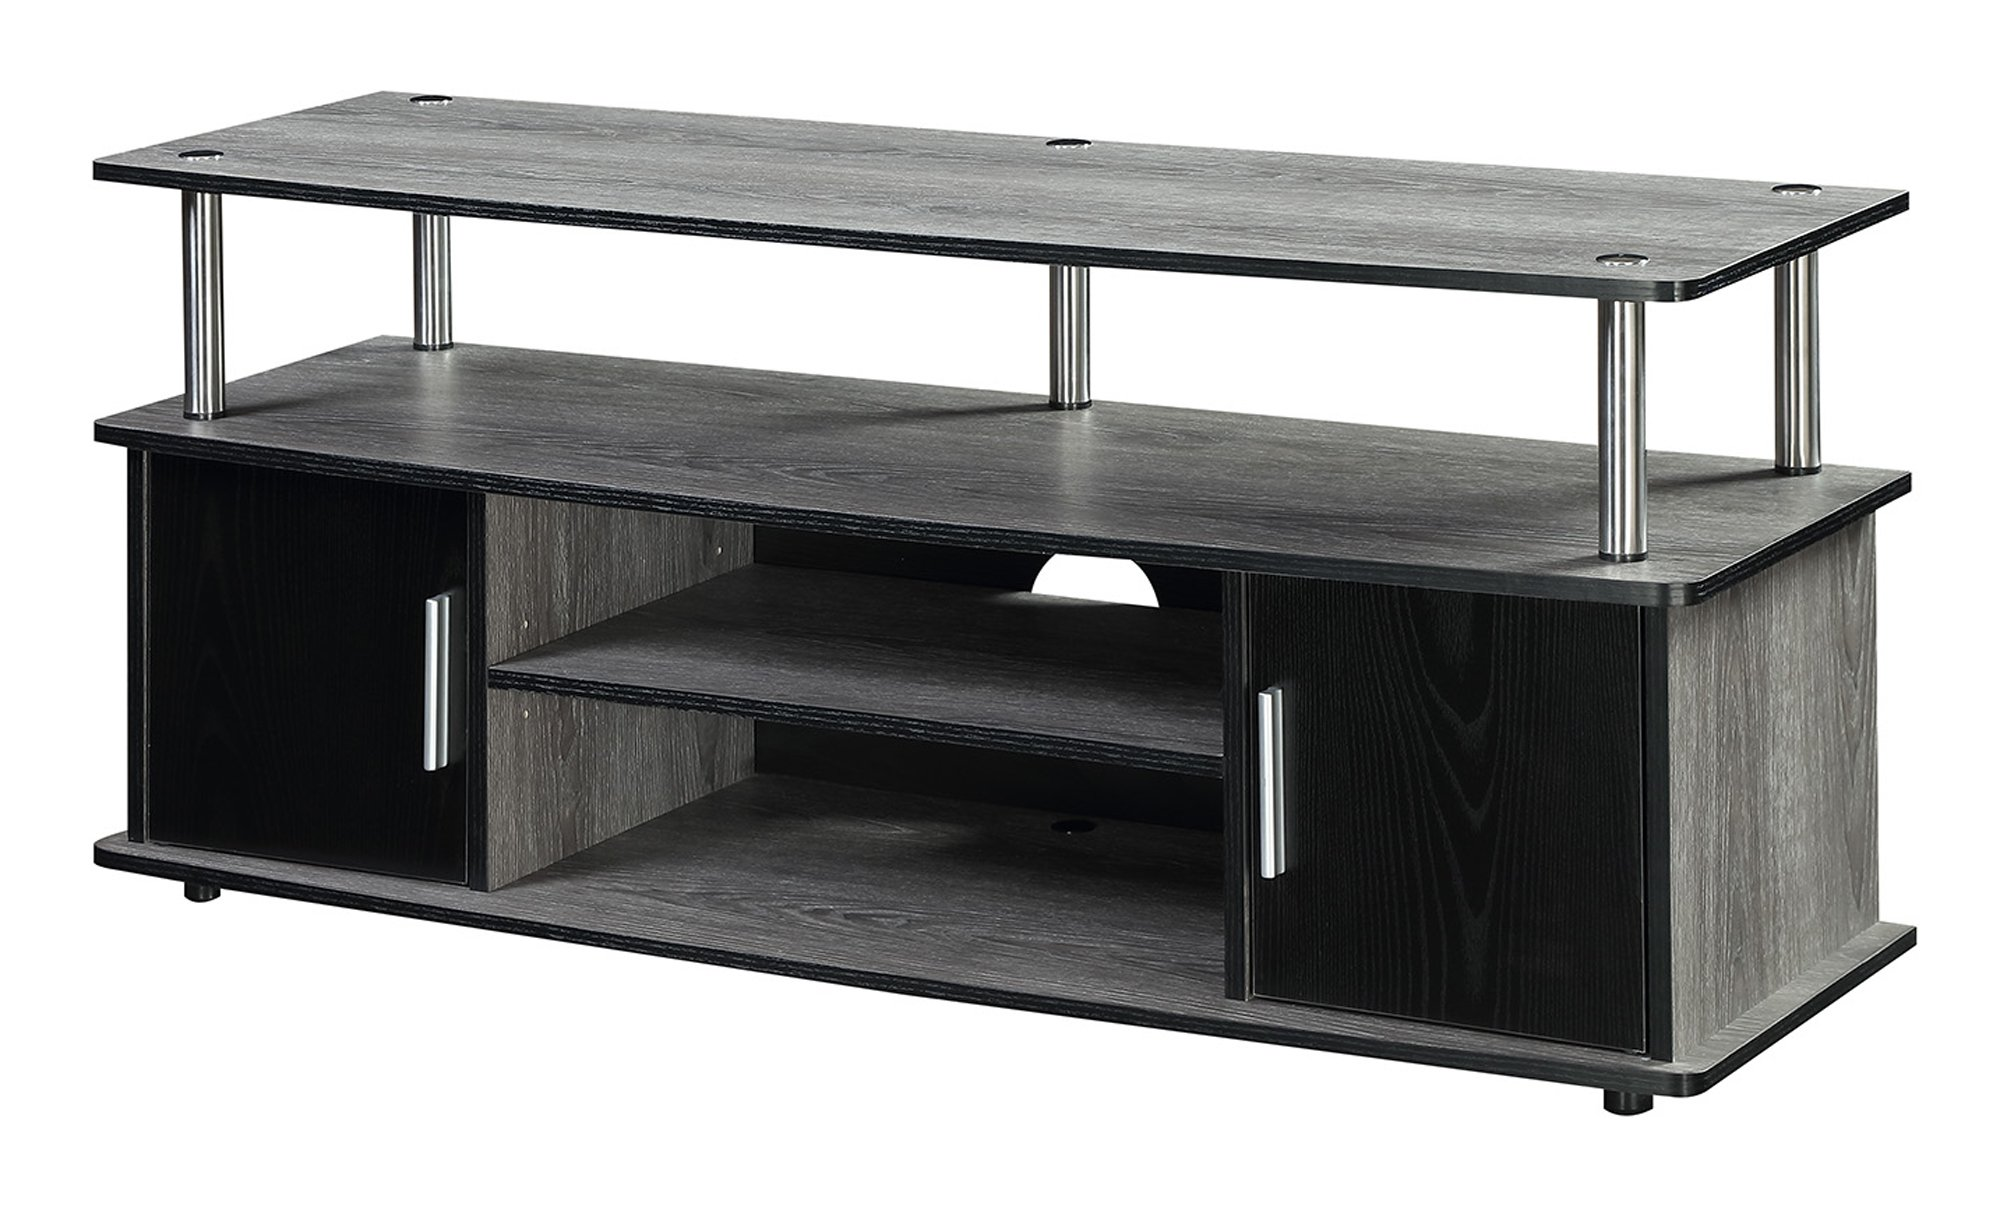 Convenience Concepts Designs2Go Television Stand, Weathered Gray by Convenience Concepts